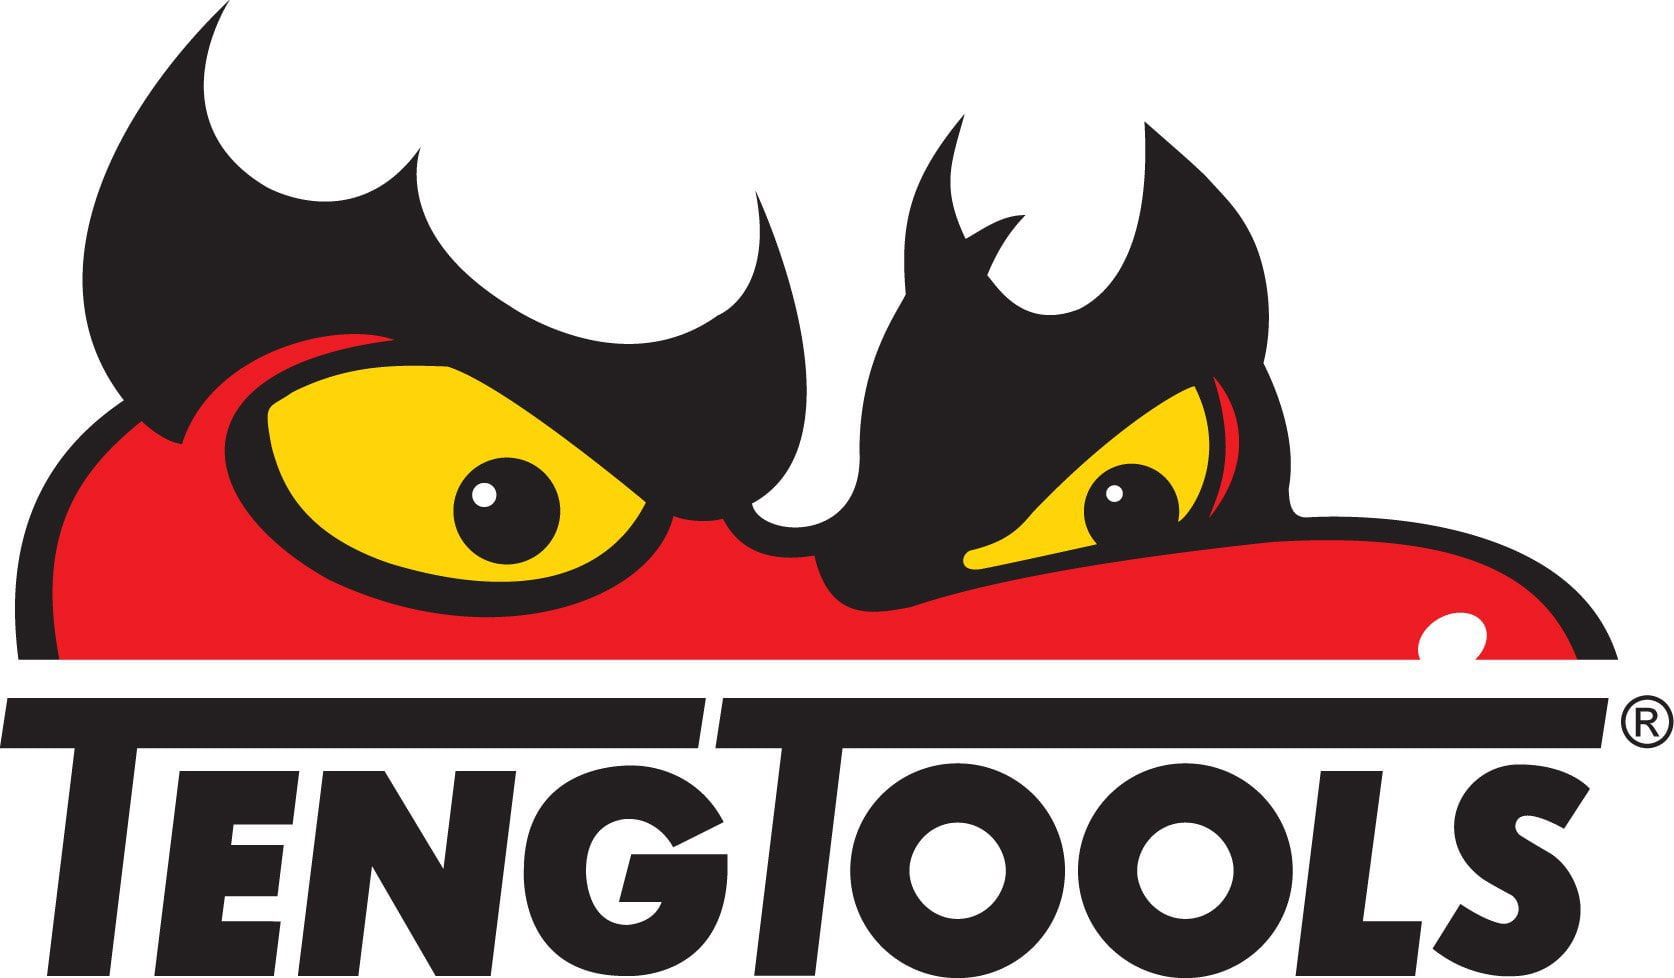 Teng Tools Decal , Sticker 5 Inches Wide